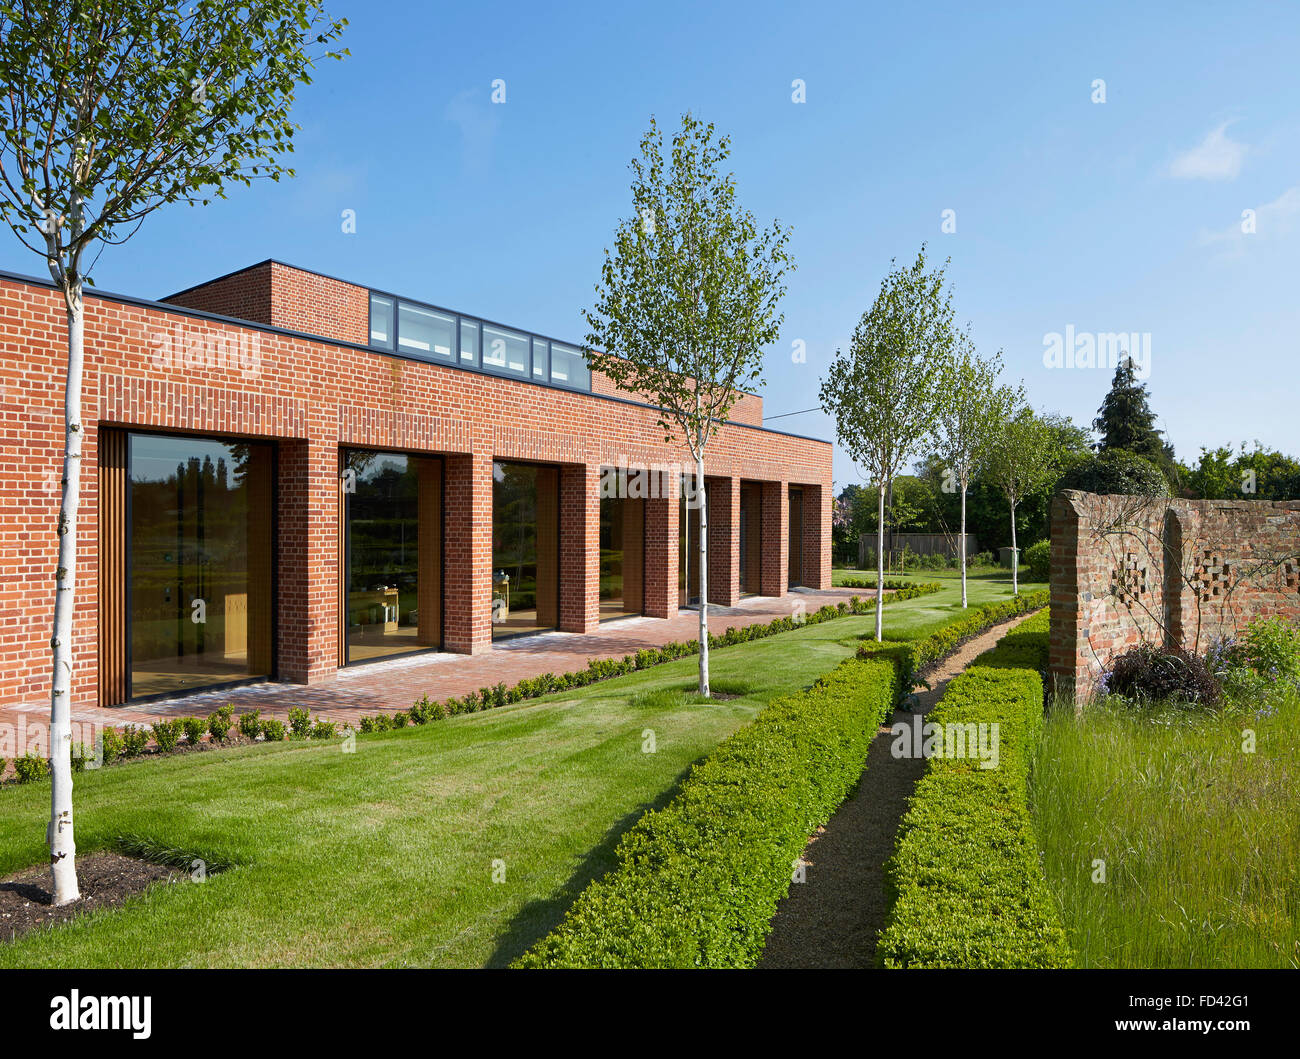 Facade perspective with recessed full-height windows. Britten-Pears Archive, Aldeburgh, United Kingdom. Architect: - Stock Image